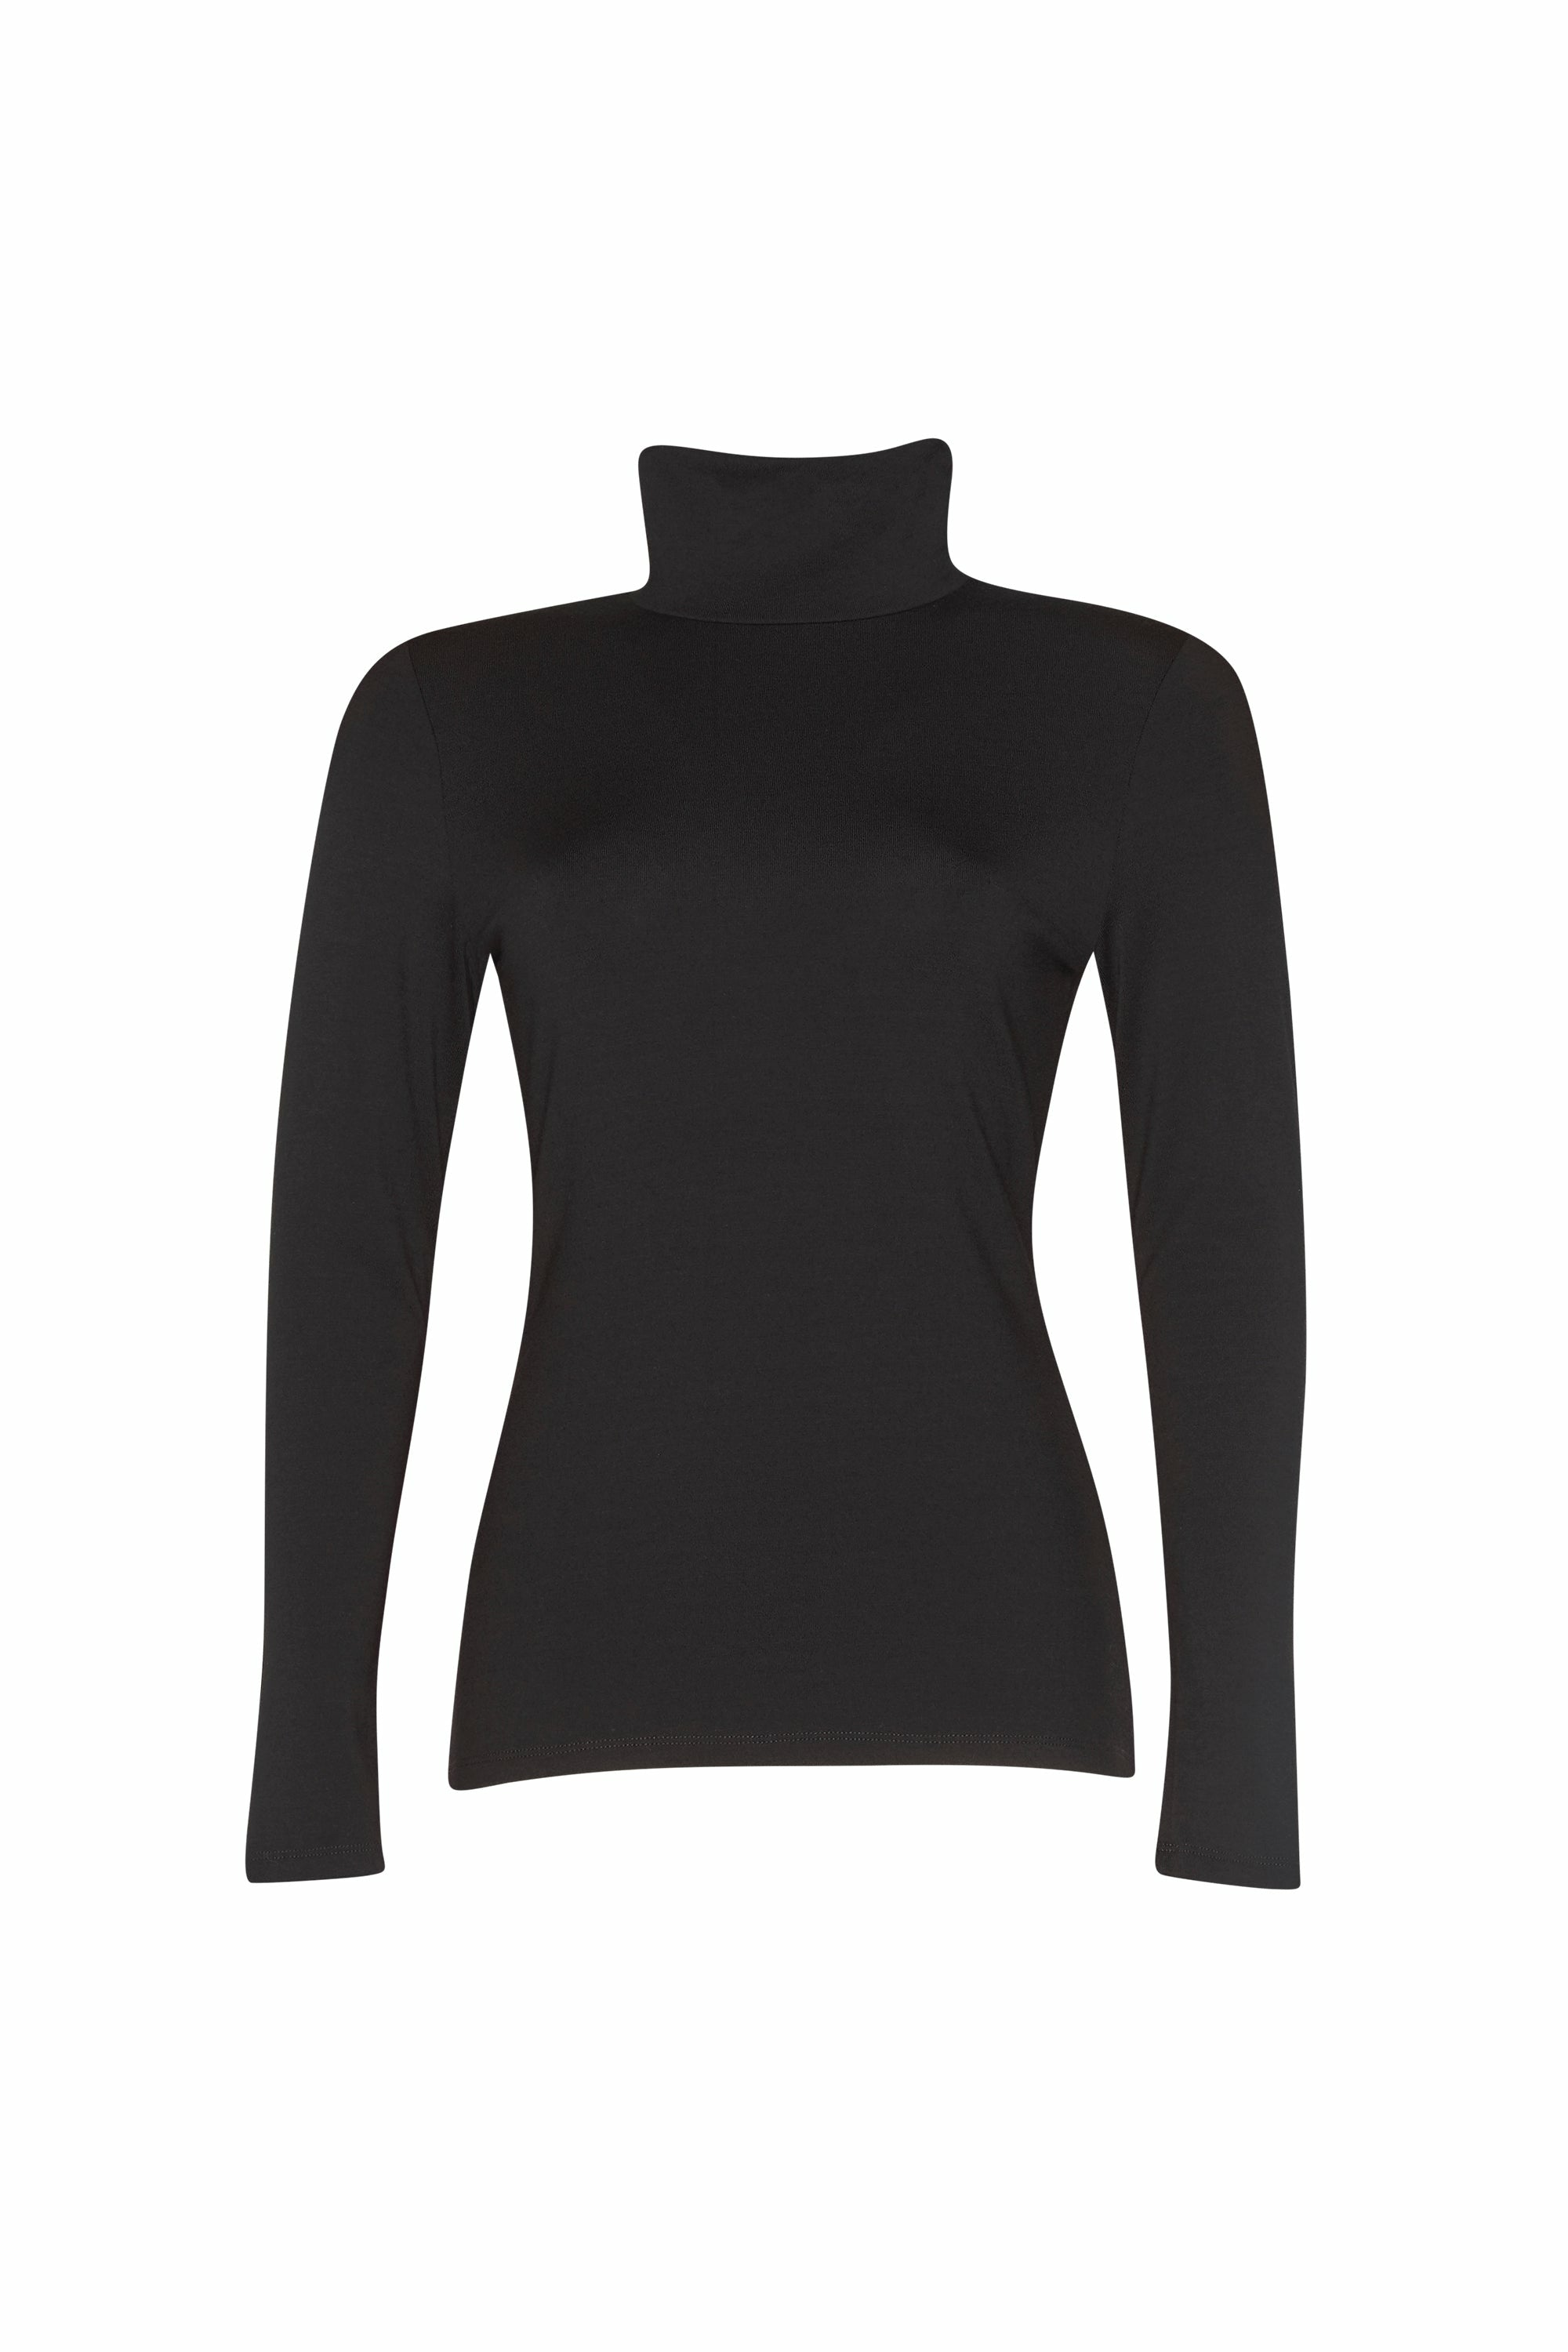 Paula Ryan Slim Fit Long Sleeve Polo Neck - French Navy